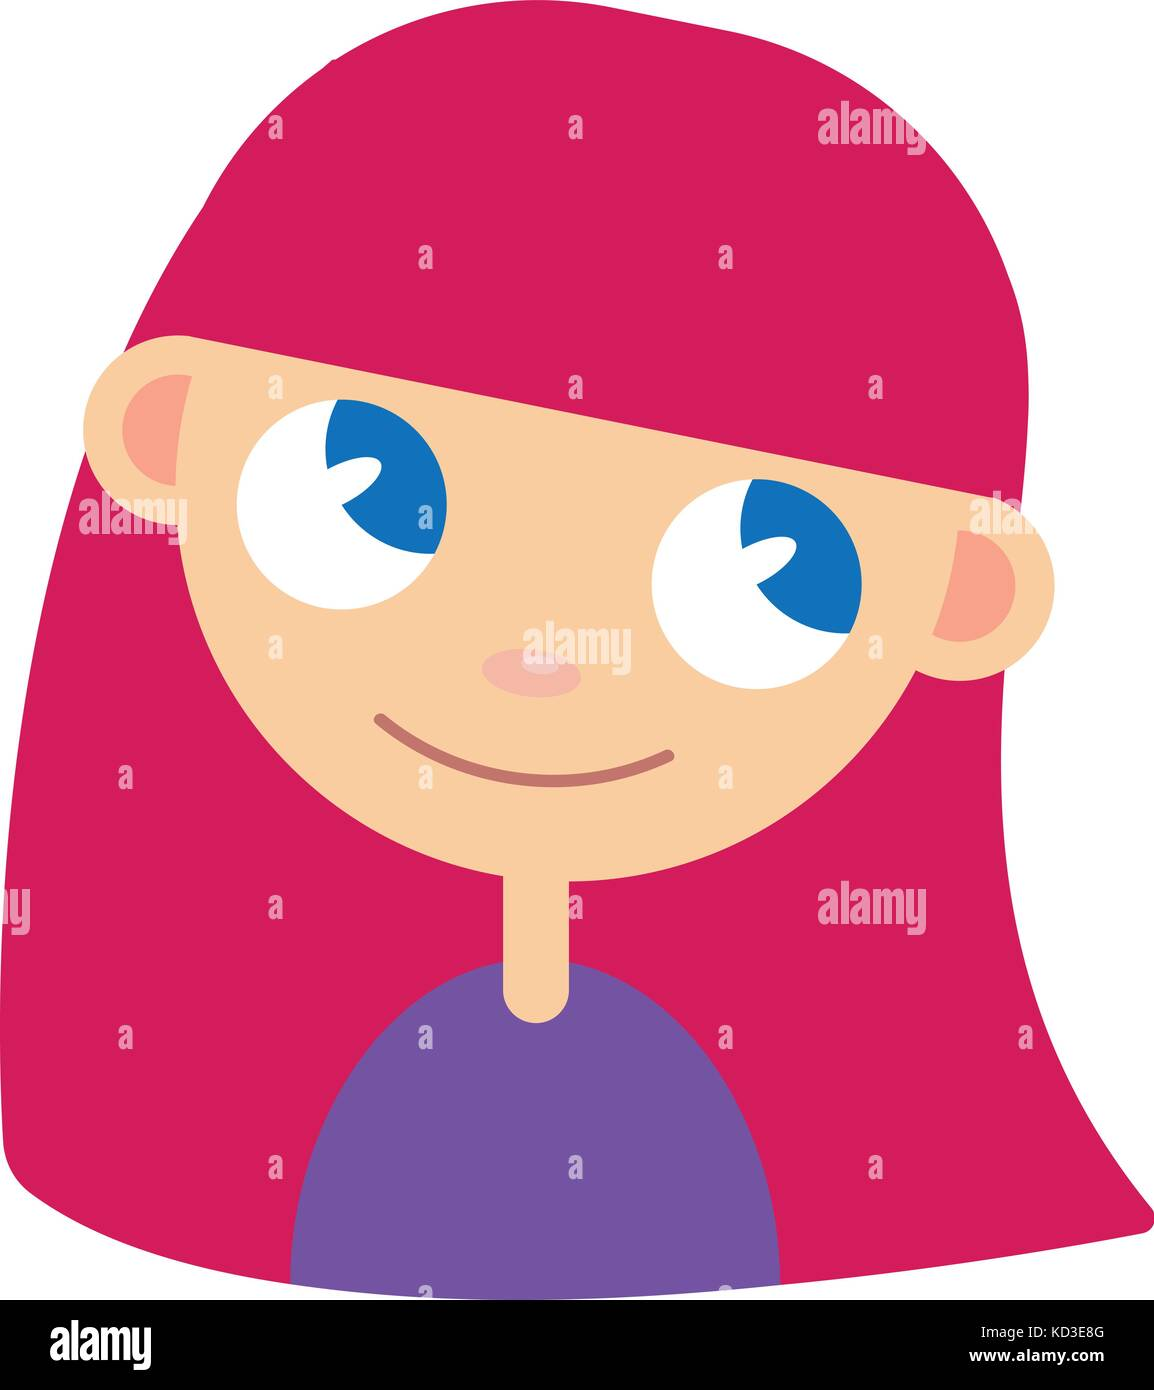 Women avatar with pink hair - Stock Vector